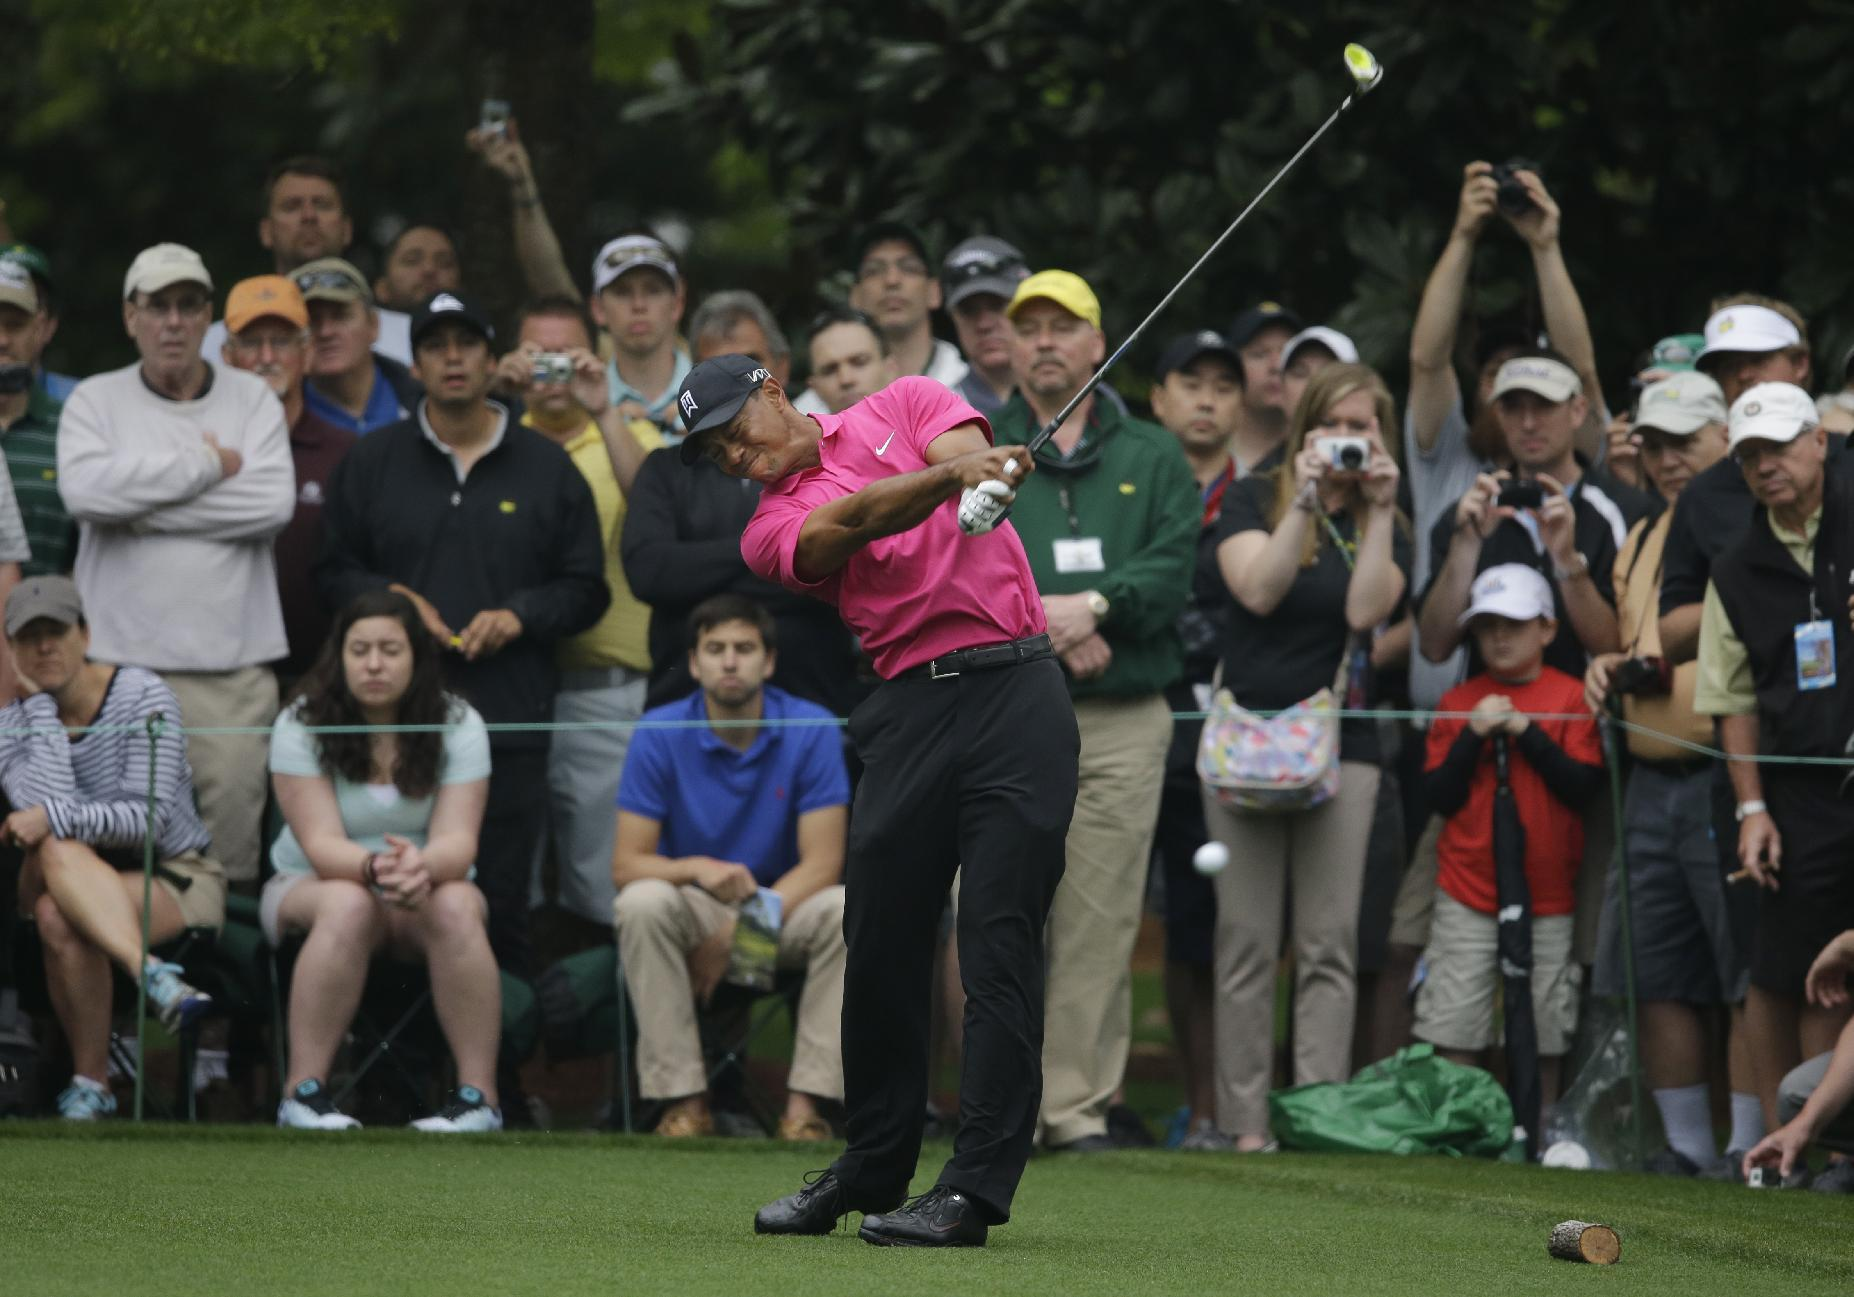 Tiger Woods grimaces as he tees off on the seventh hole during a practice round for the Masters golf tournament Tuesday, April 7, 2015, in Augusta, Ga. (AP Photo/Matt Slocum)